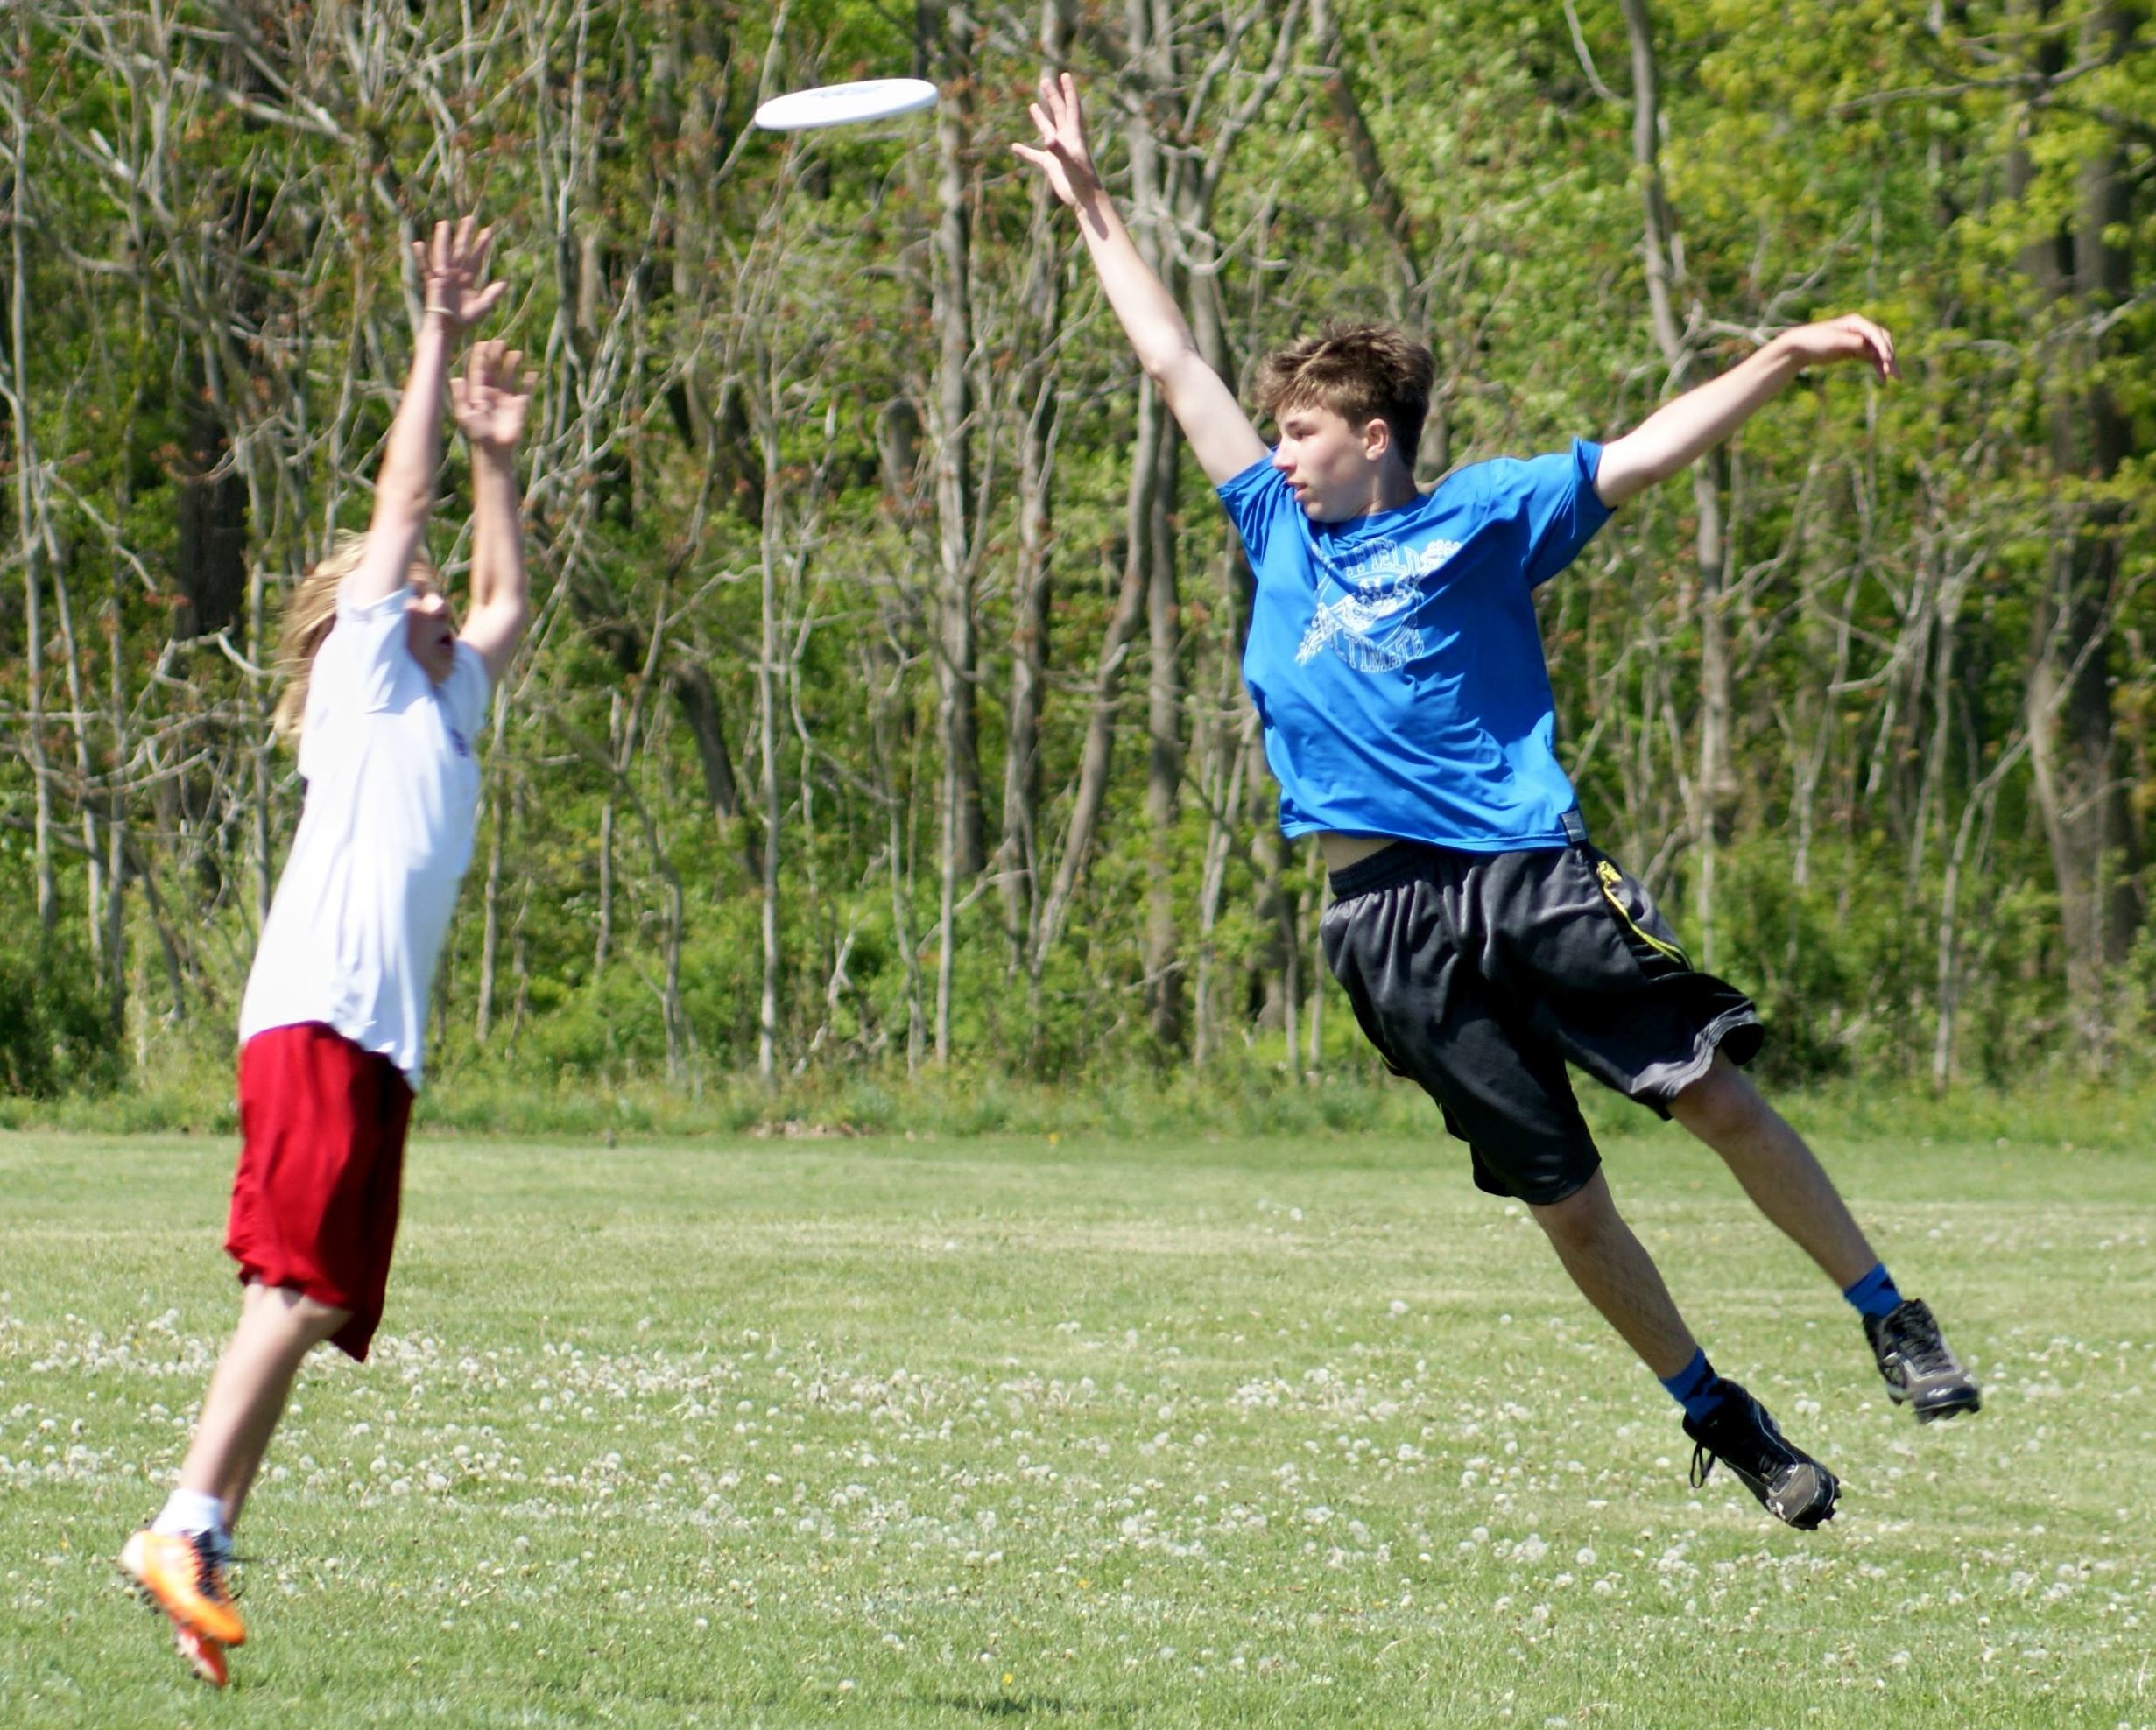 1353bc49d4fed305d1f8_Ezra_sky_resize__2__Sports_Camp_Photo_Frisbee.jpg